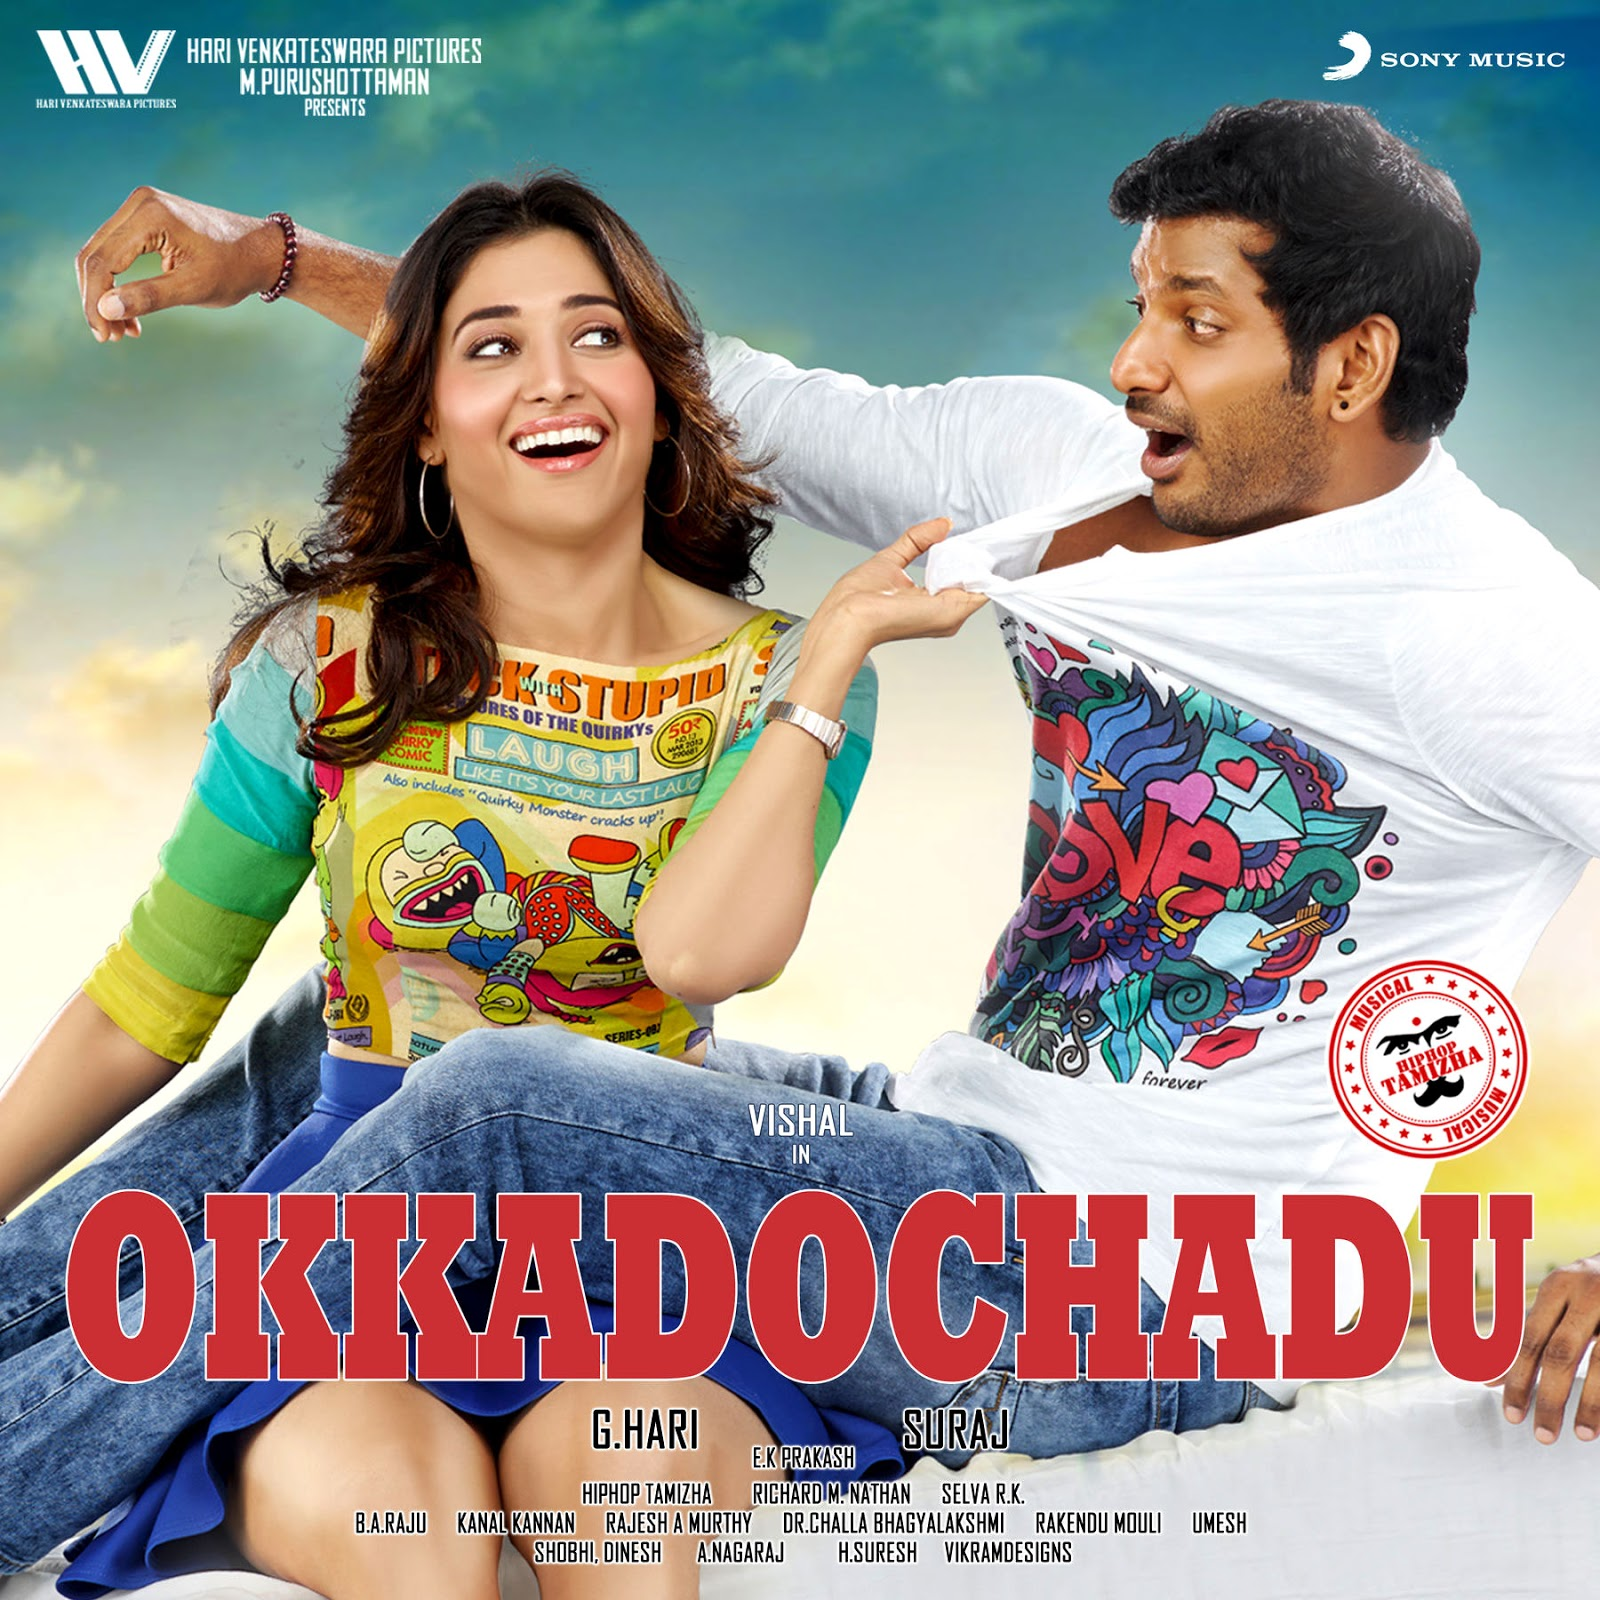 Okkadochadu-2016-Original-CD-Front-Cover-Poster-wallpaper